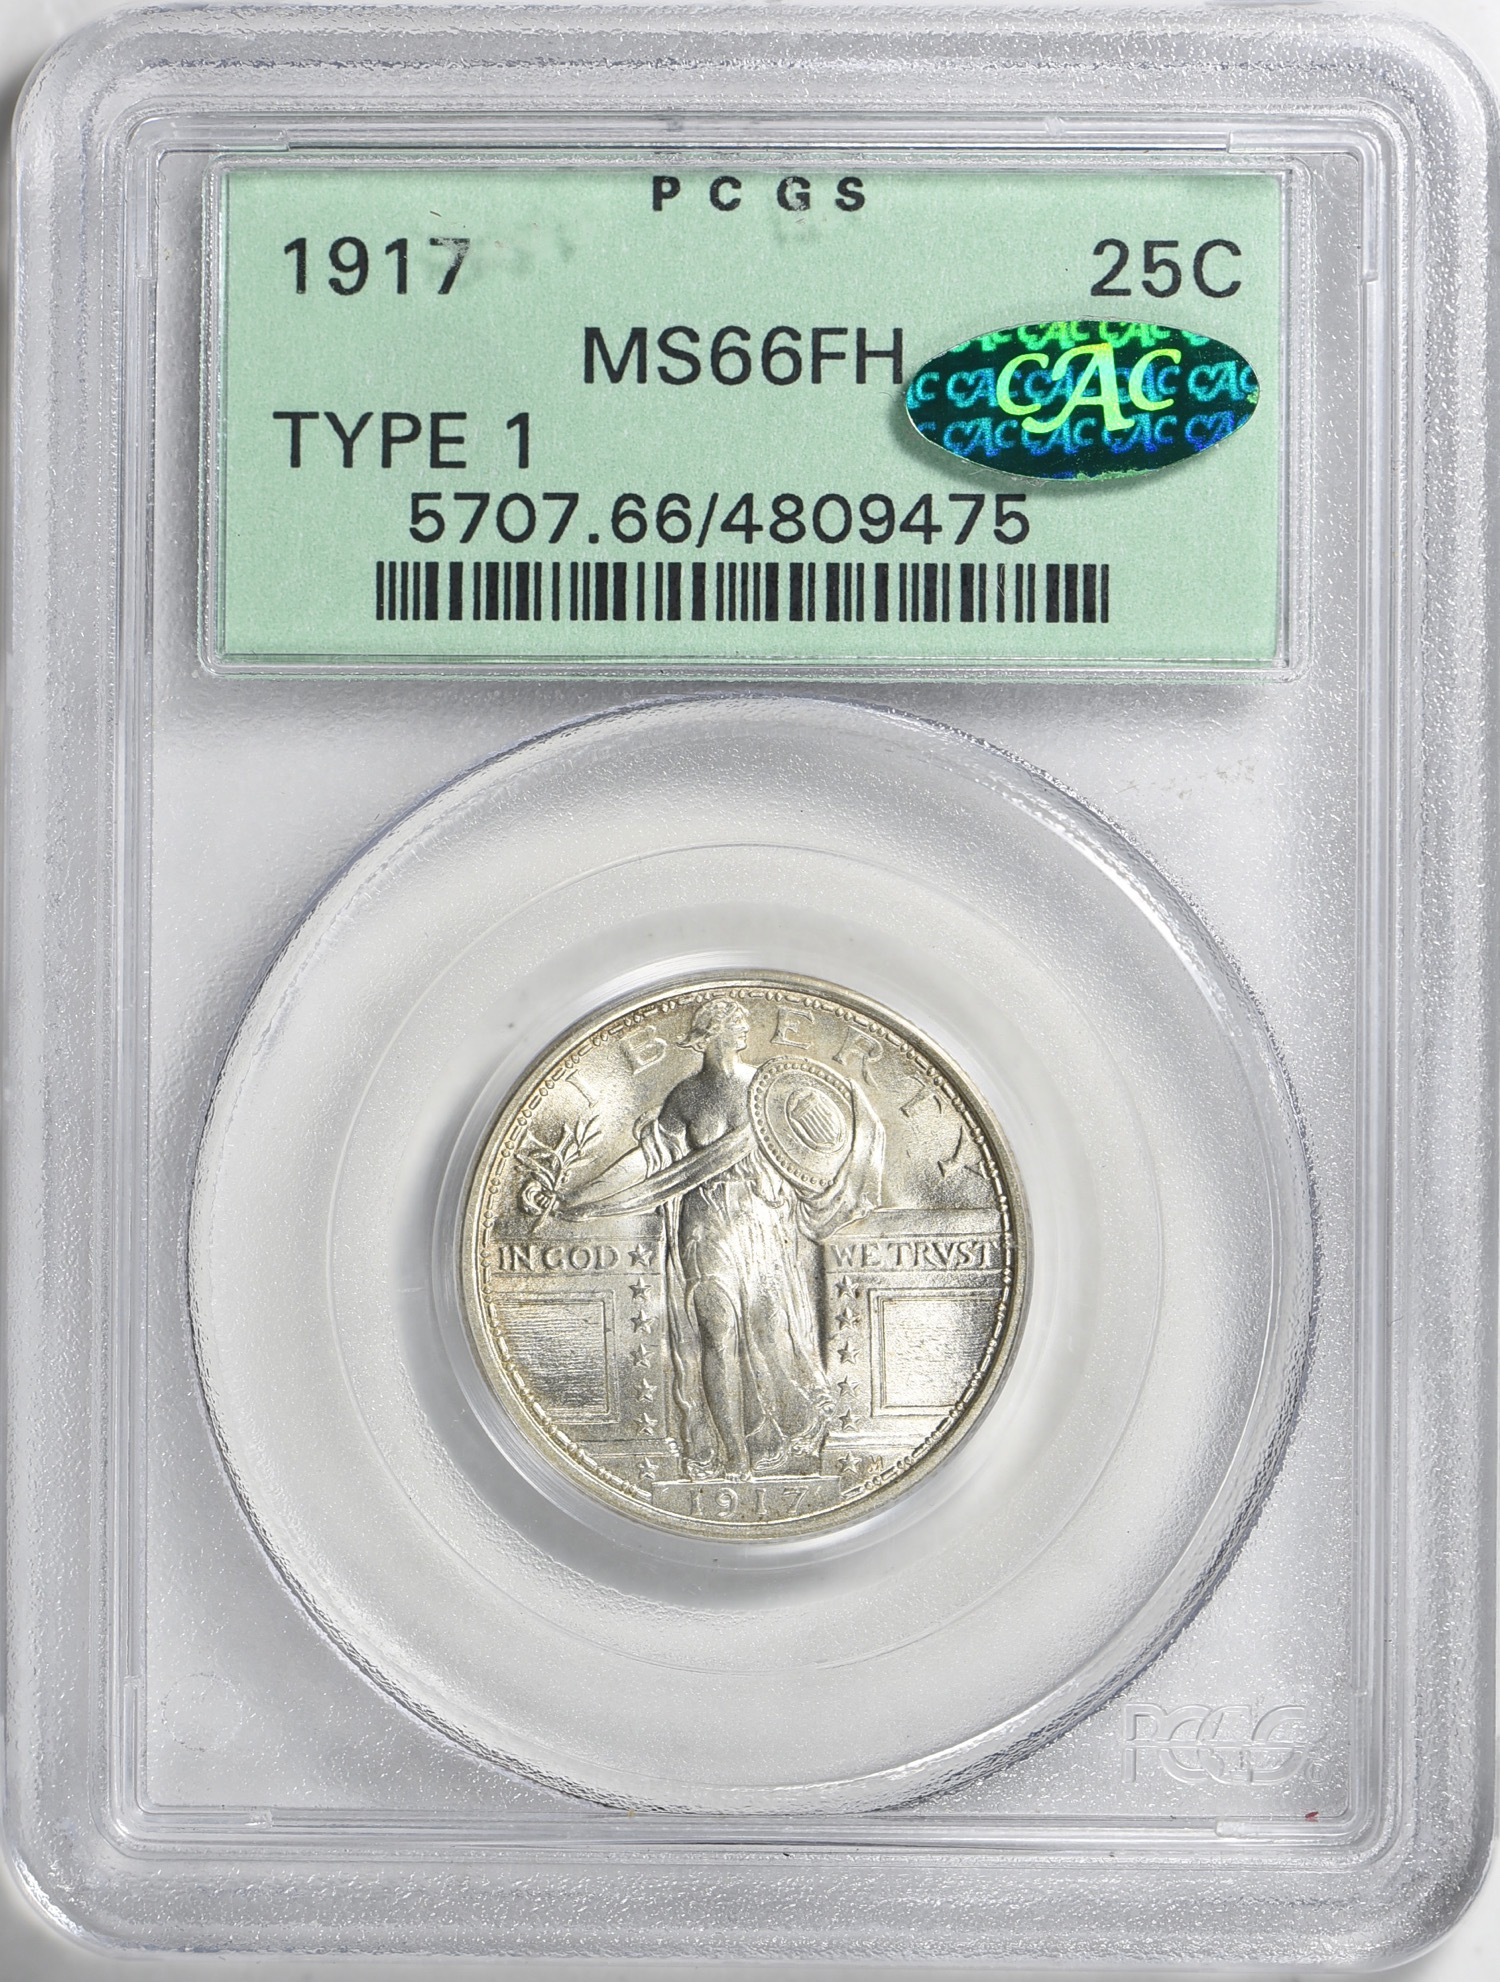 1917 Type 1 MS66FH CAC OGH - Acquired 4.14.19 GreatCollections. I have wanted a nice Type 1 Standing Liberty since I was kid. This will be in a 20th Century CAC OGH type set I plan to gradually assemble. Bidding was fierce but as this is a birthday present from Mrs. CC I felt comfortable bidding aggressively. CC can't see how this wouldn't get a plus on a reconsideration submission.